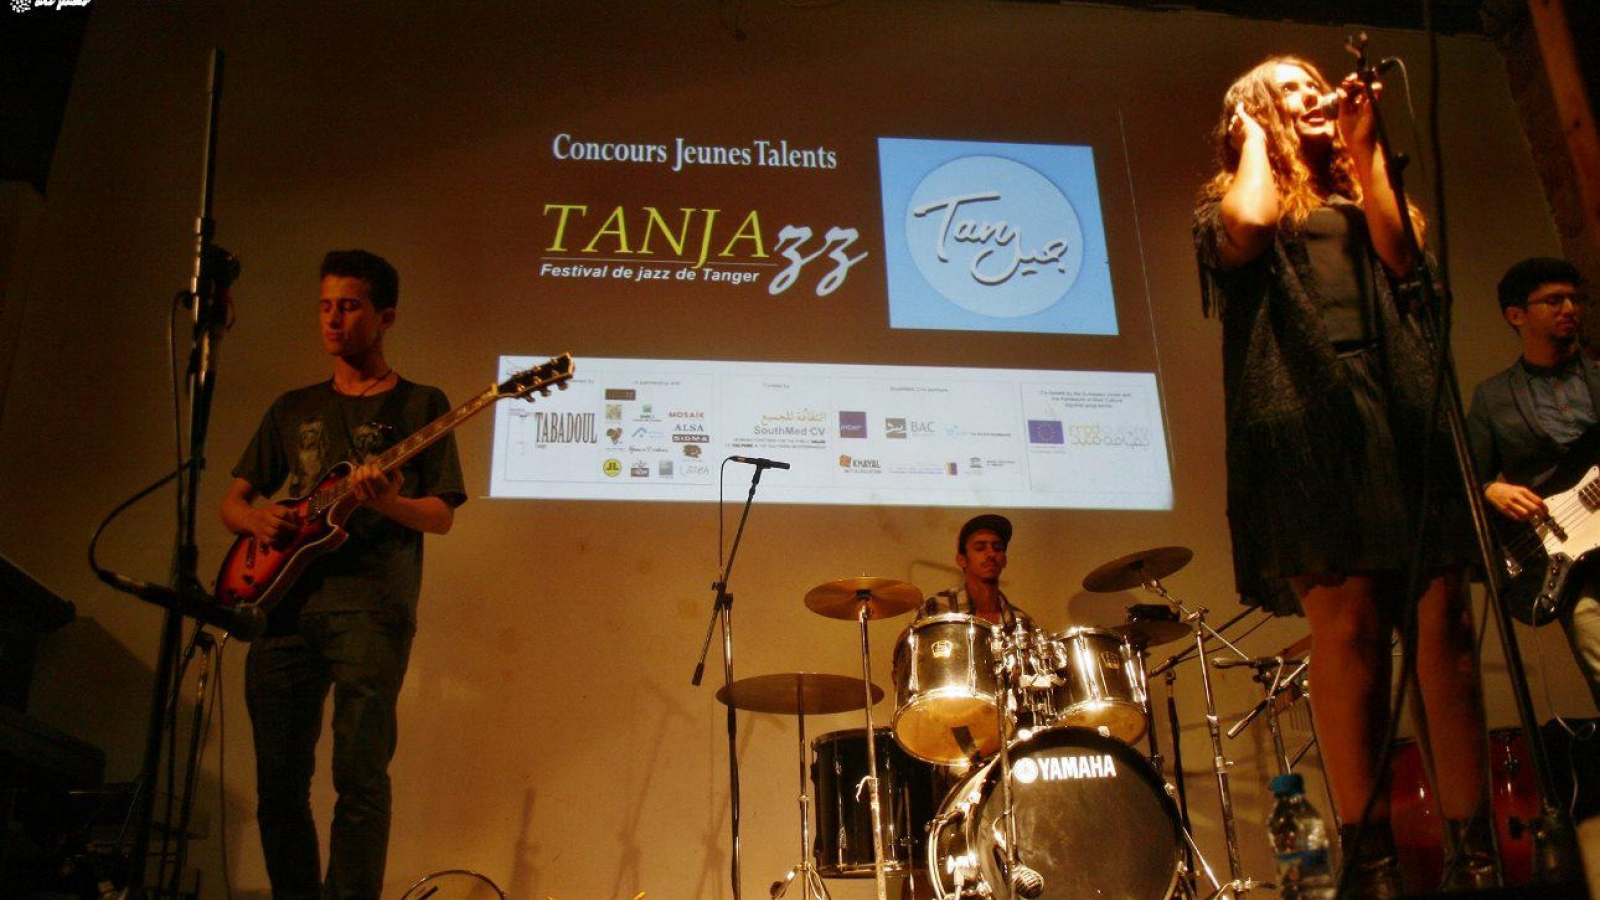 Discovering young jazz talent in Morocco, thanks to EU culture programme